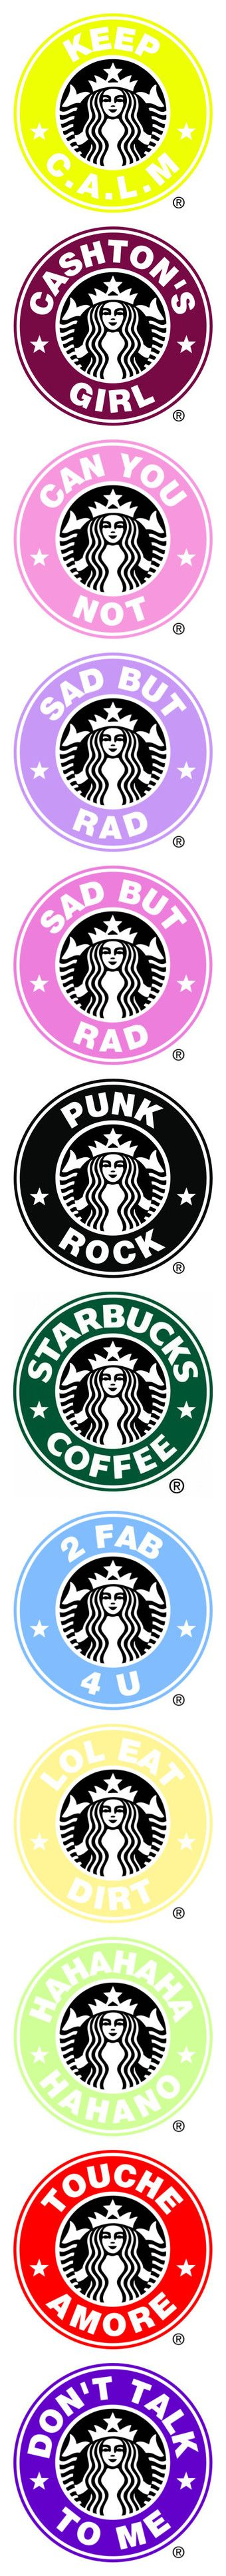 """""""Starbucks Logos"""" by kristina-payne ❤ liked on Polyvore featuring starbucks logos, backgrounds, filler, fillers, logo, other, starbucks, text, - fillers and words"""